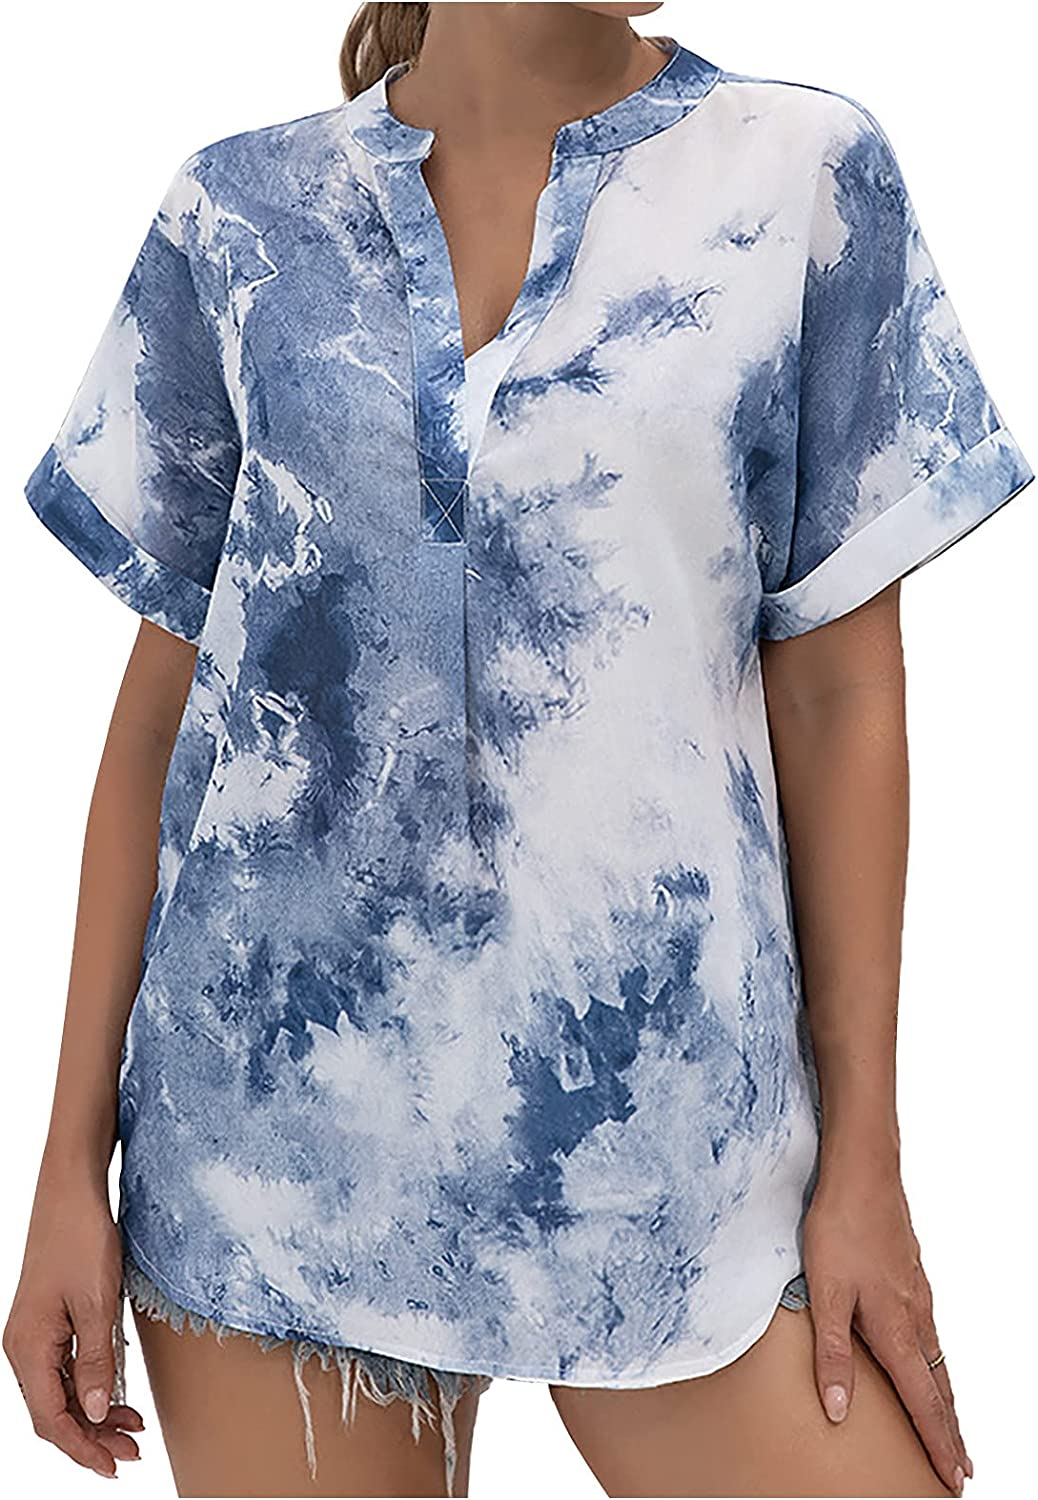 Blouses for Women Fashion Tie-dy Print Casual Tunics V-Neck Button Down Loose Summer Tops Vacation Comfy Shirt